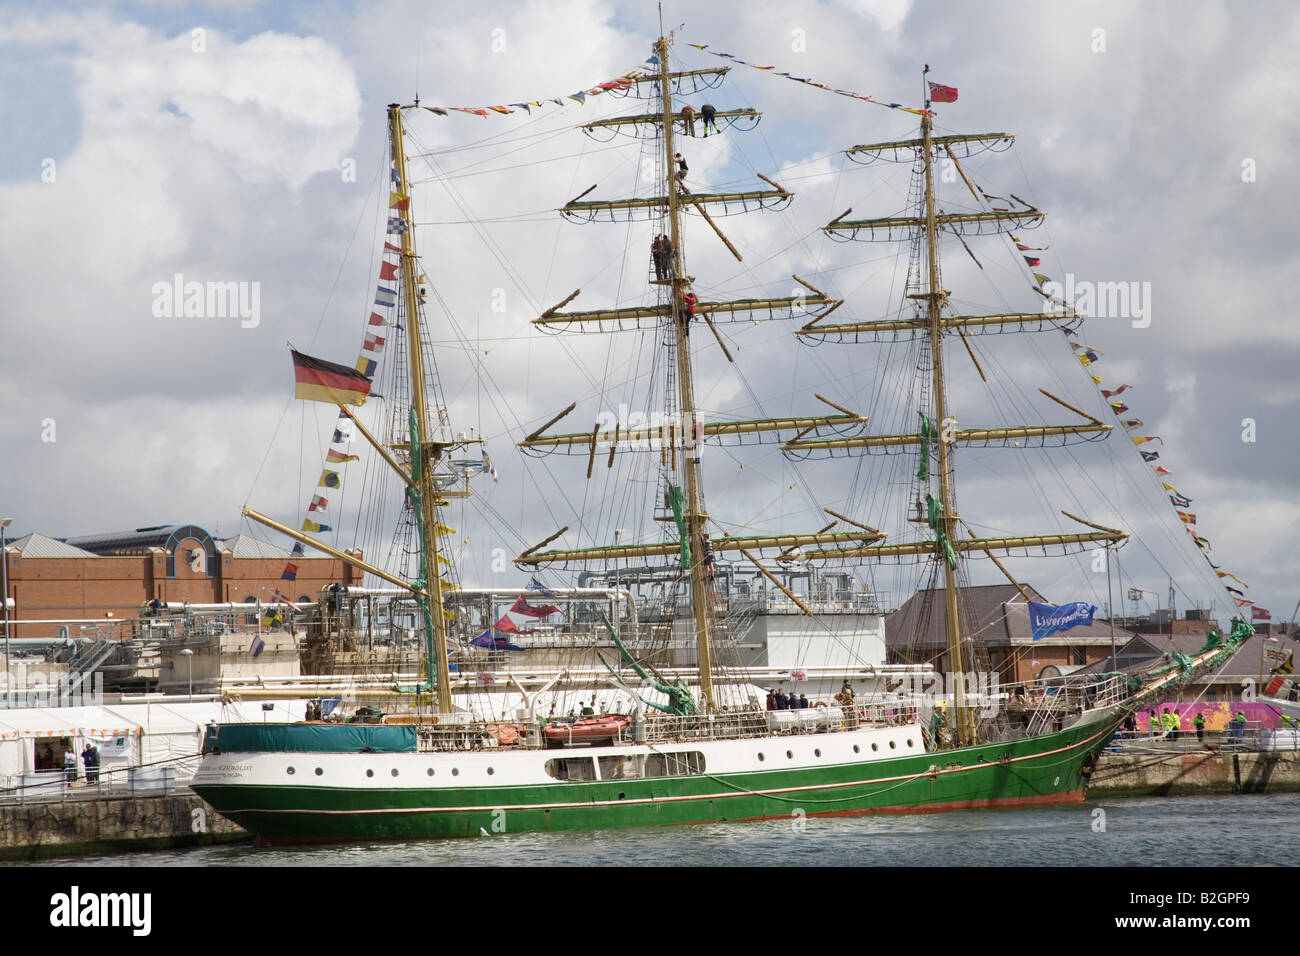 Liverpool Merseyside England UK July Alexander von Humboldt a German three masted sailing ship entrant in Tall Ships Stock Photo